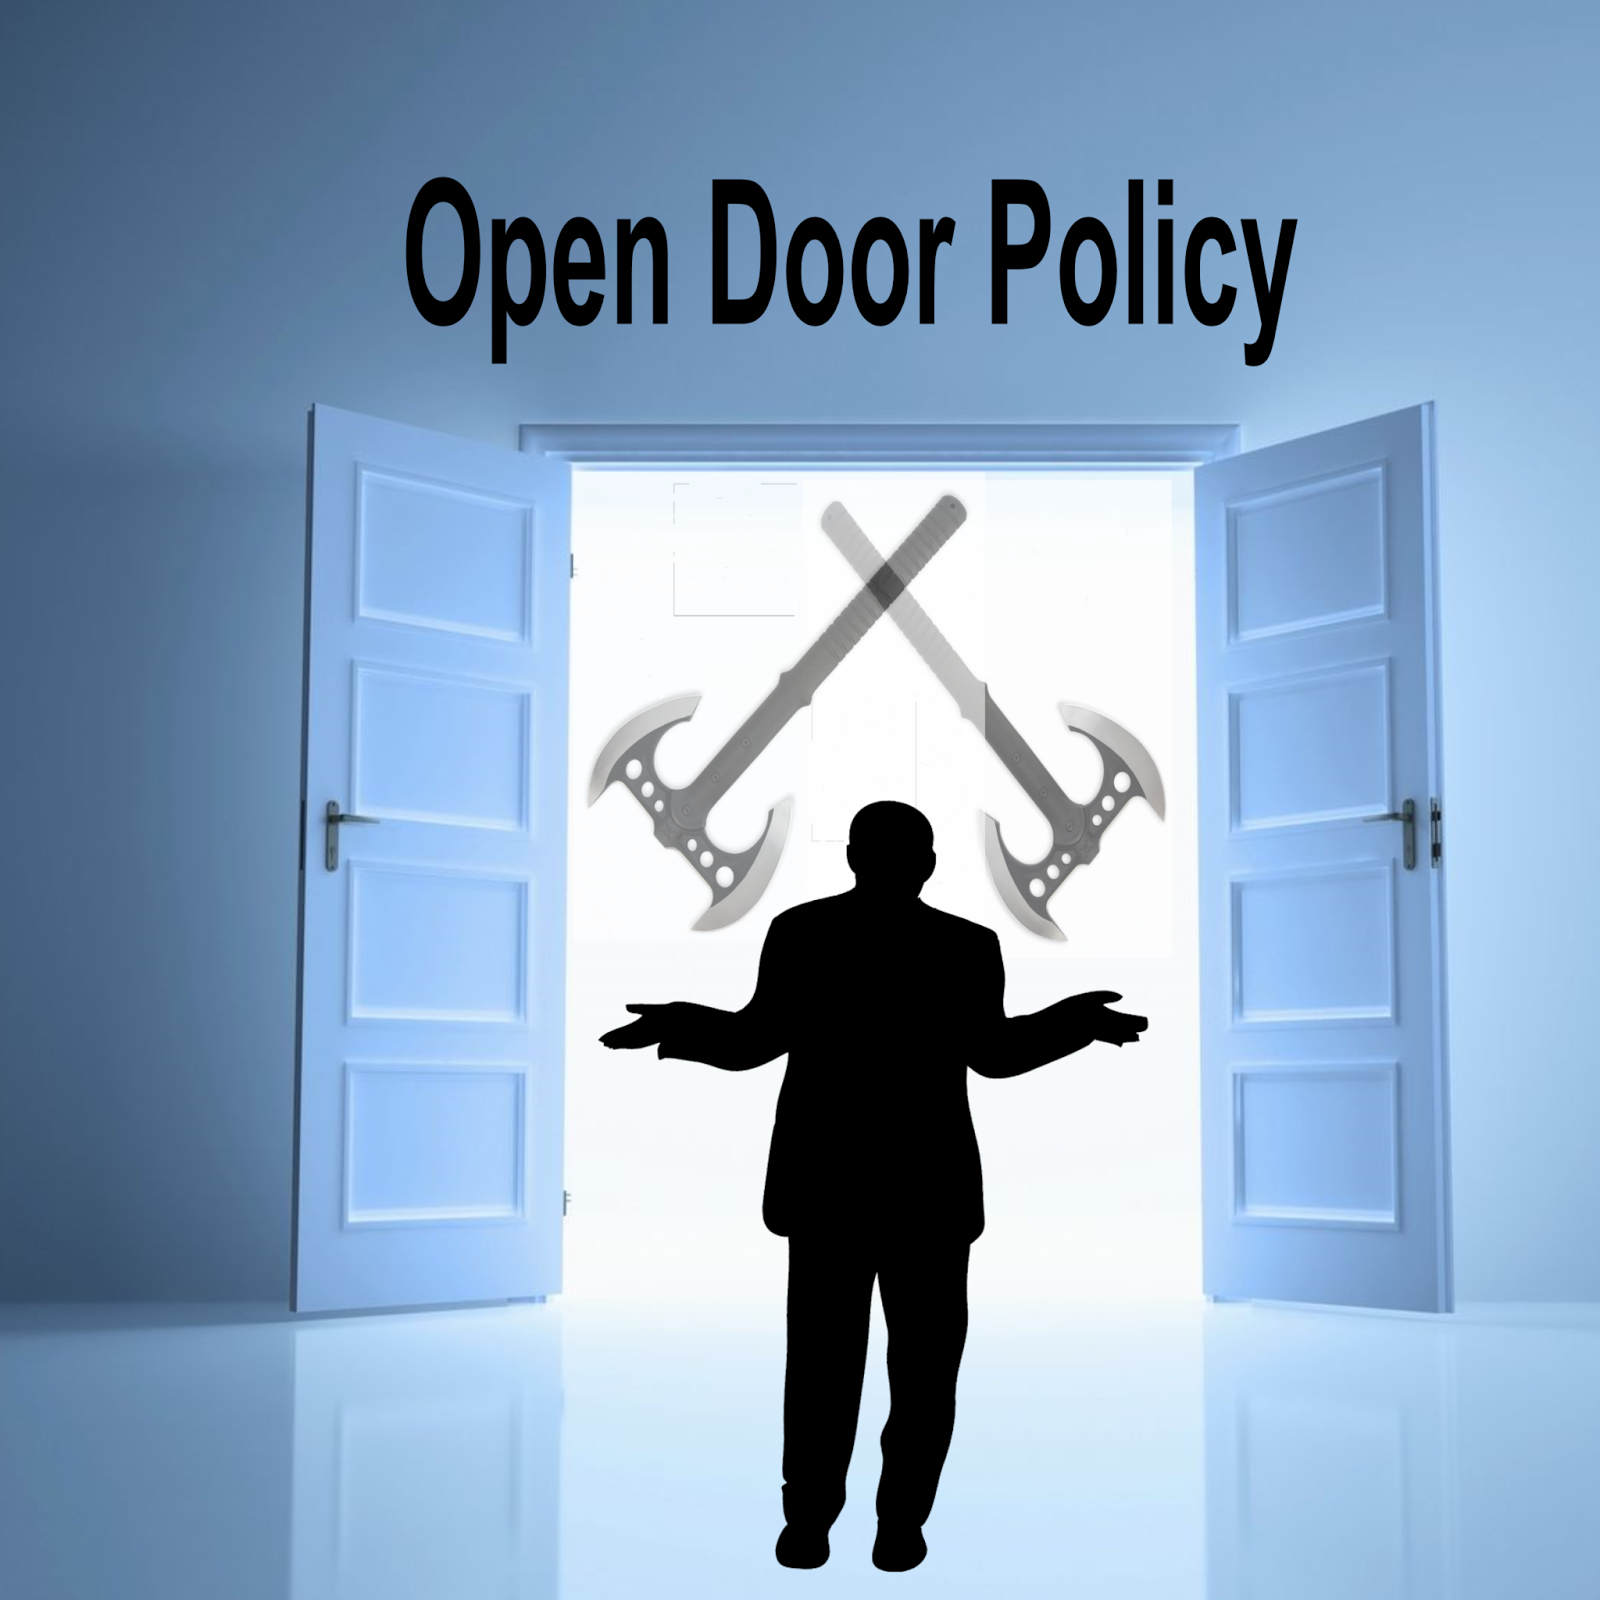 advantages of open door policies It is a multi-year process that evaluates curriculum, policies and procedures,  safety,  the advantage is that the open door enables children to relate to one.